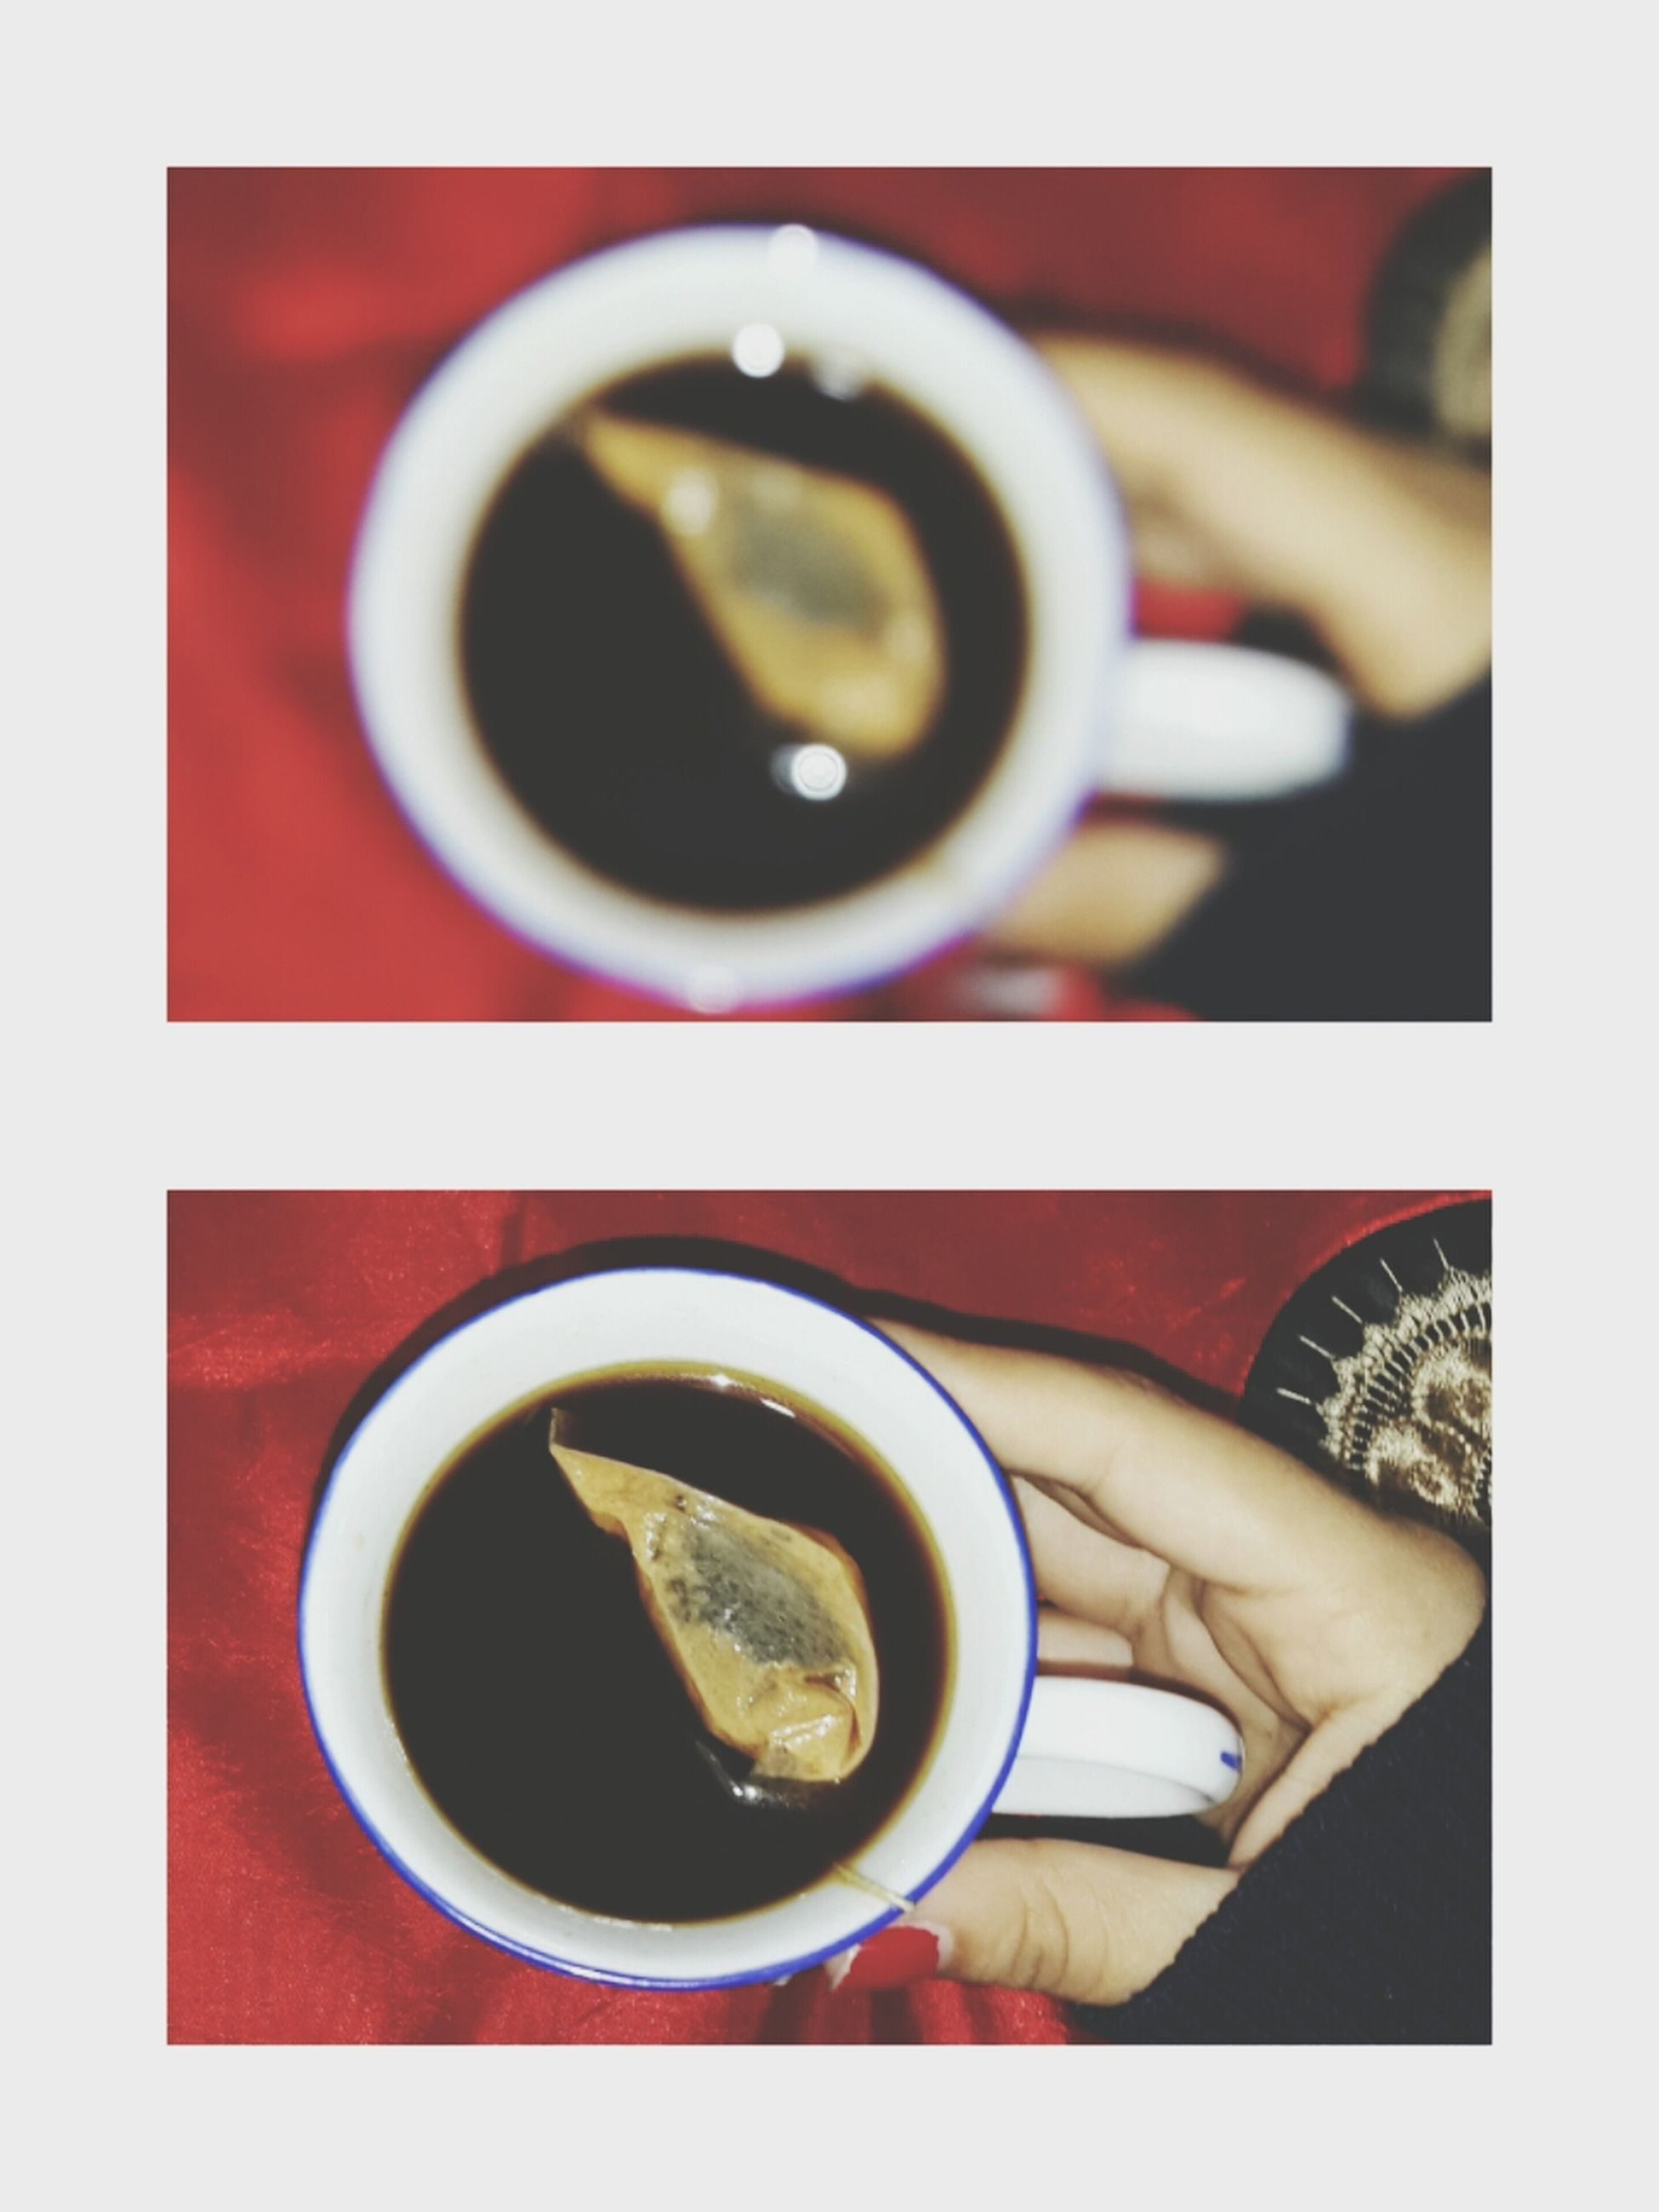 coffee cup, drink, refreshment, food and drink, coffee - drink, coffee, indoors, cup, freshness, table, saucer, transfer print, tea, holding, tea cup, beverage, auto post production filter, close-up